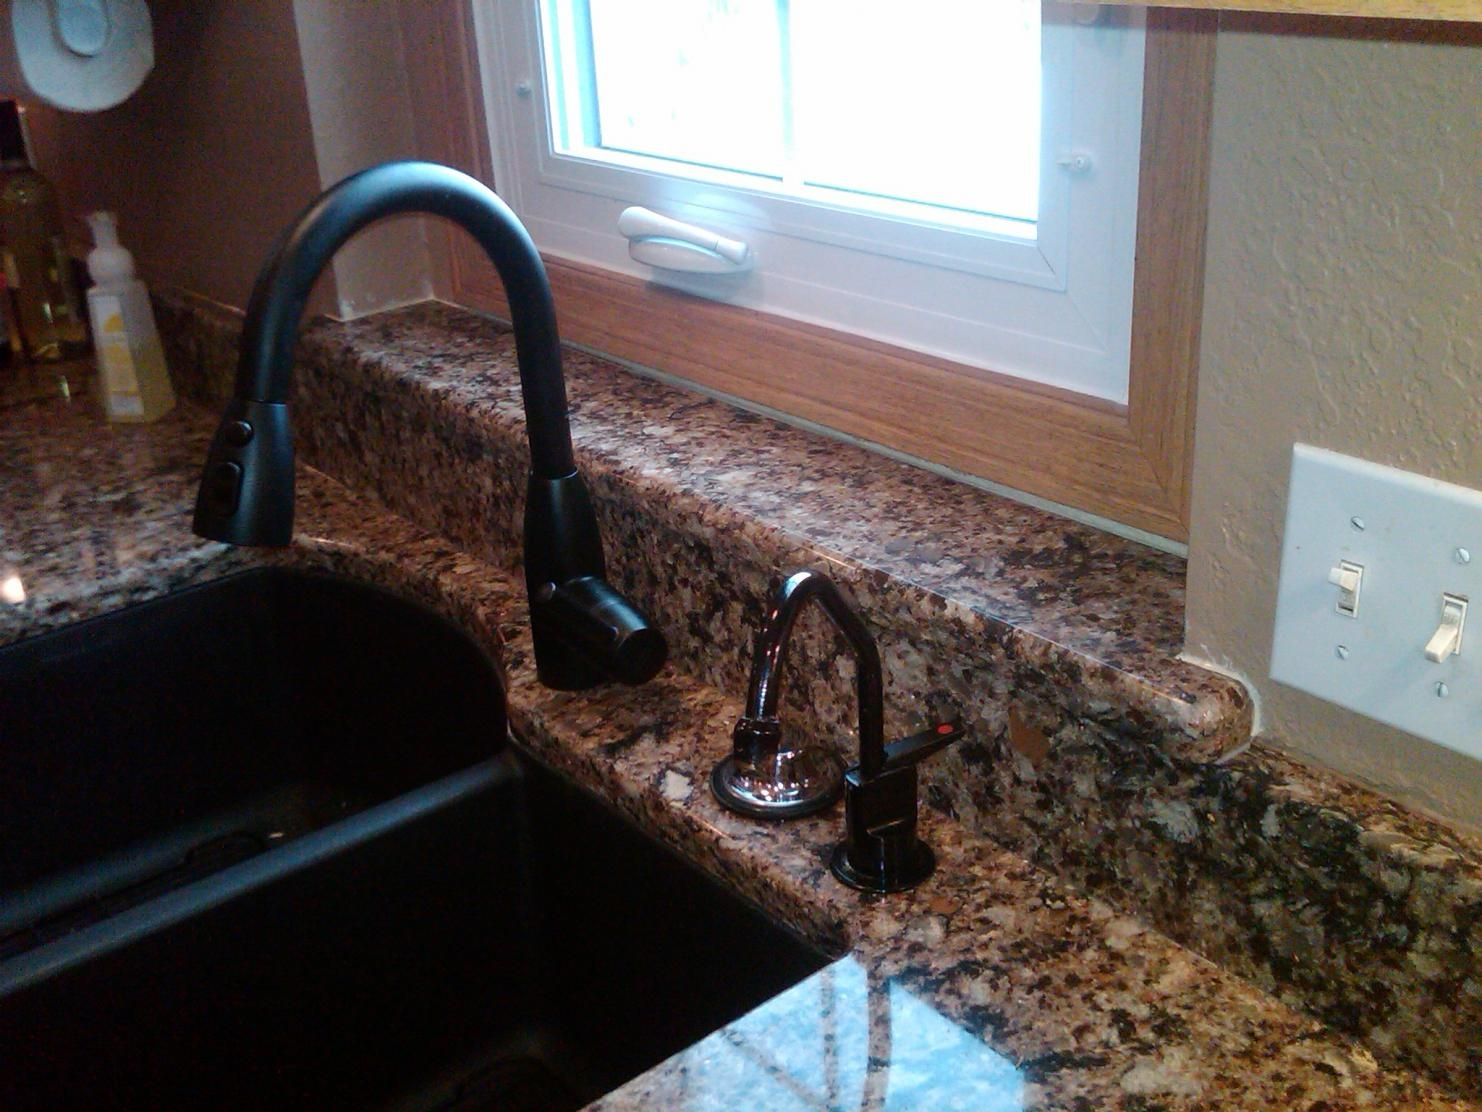 Ideas, kitchen sink faucets for granite countertops kitchen sink faucets for granite countertops faucet on granite countertops kitchens baths contractor talk 1482 x 1112  .